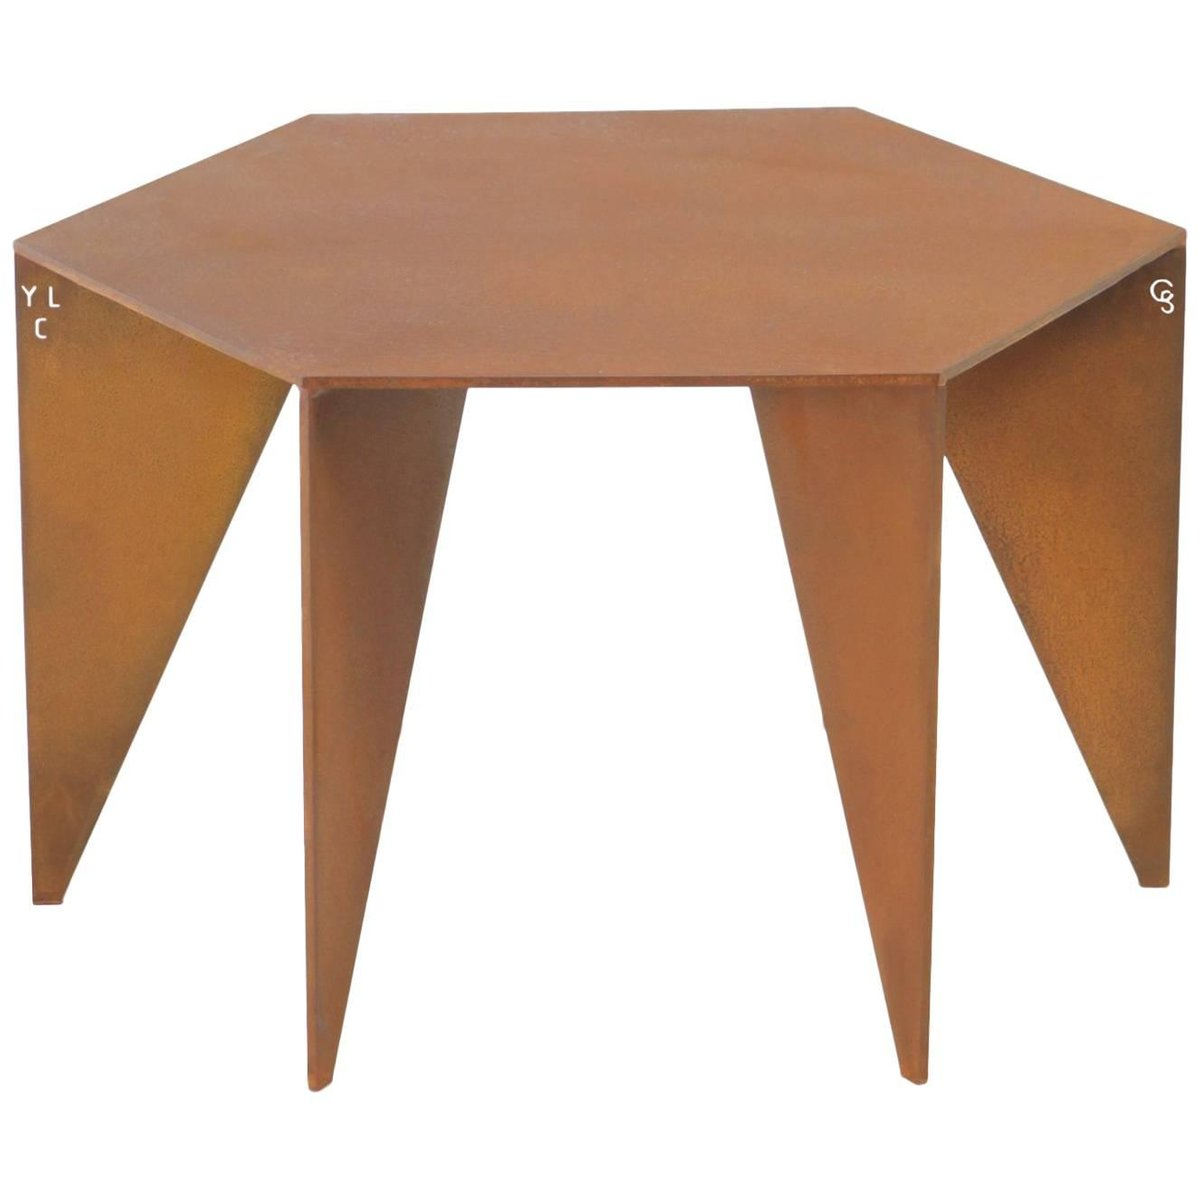 Brutalist Table by Yoan Claveau de Lima for LES CHOSES EDITION